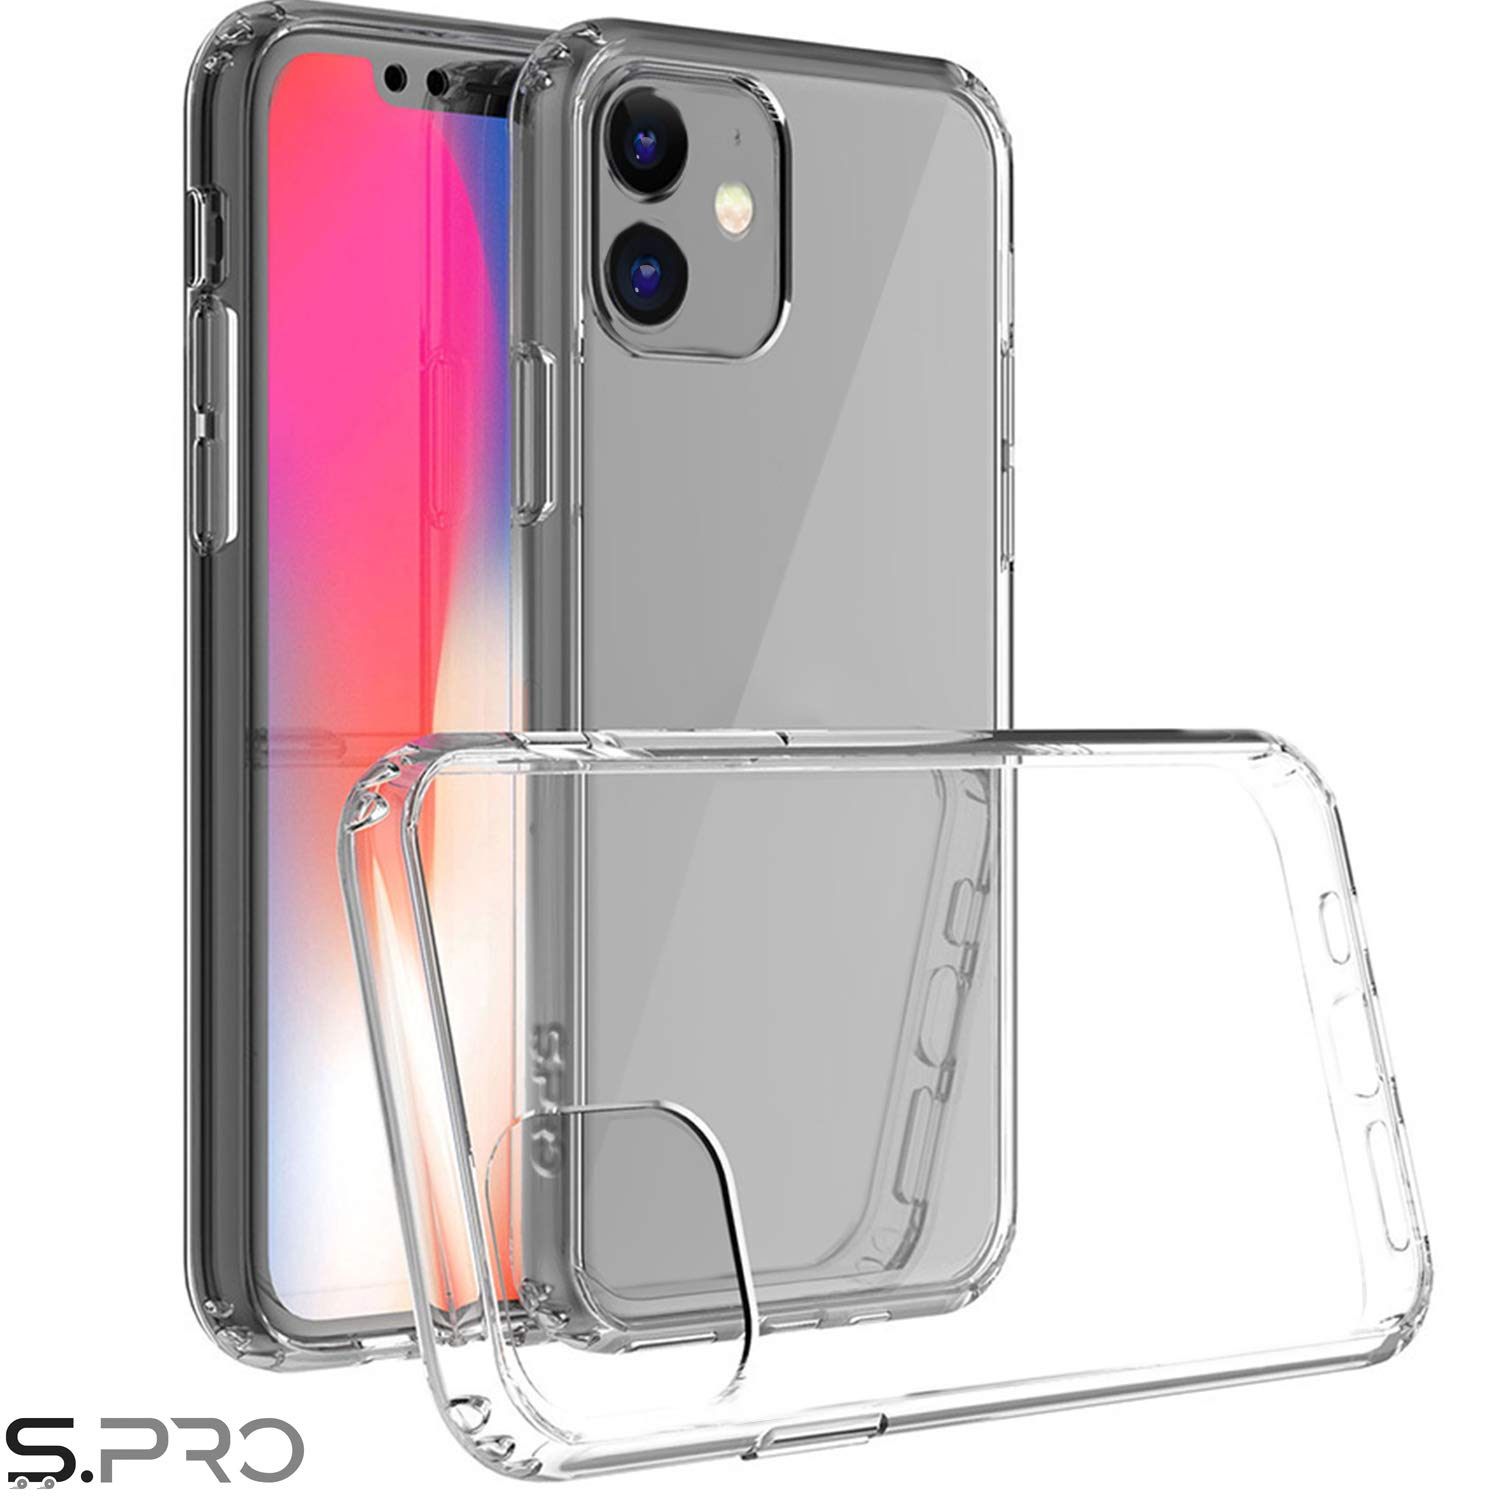 S.PRO for iPhone 11 Clear Case Ultra Thin Transparent Shockproof Protective Hard PC Shield+Soft TPU Cover for iPhone 11 6.1 Inch